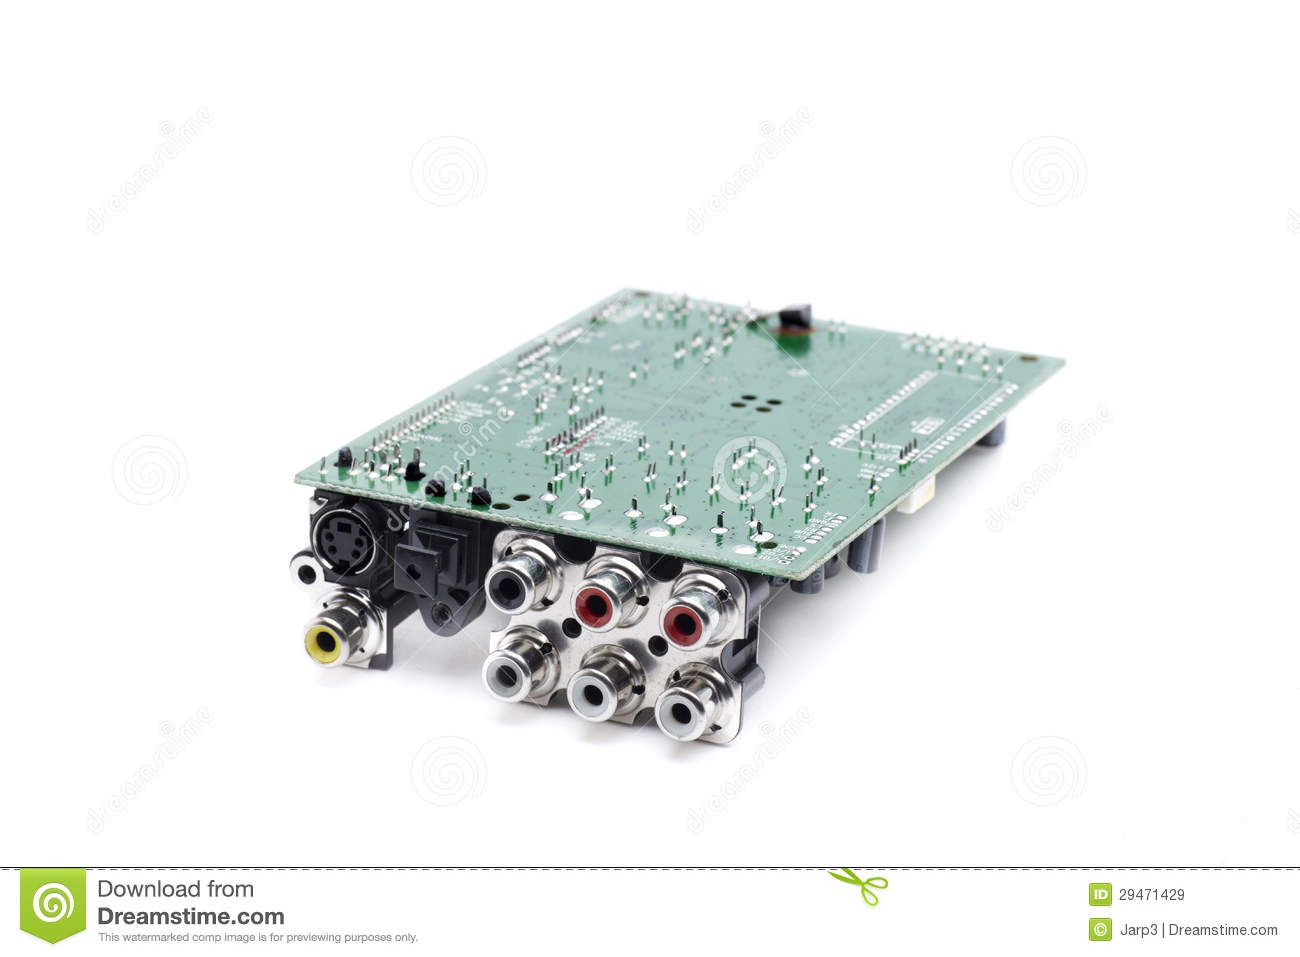 Rca motherboard stock image. Image of jacks, cables, interconnect ...